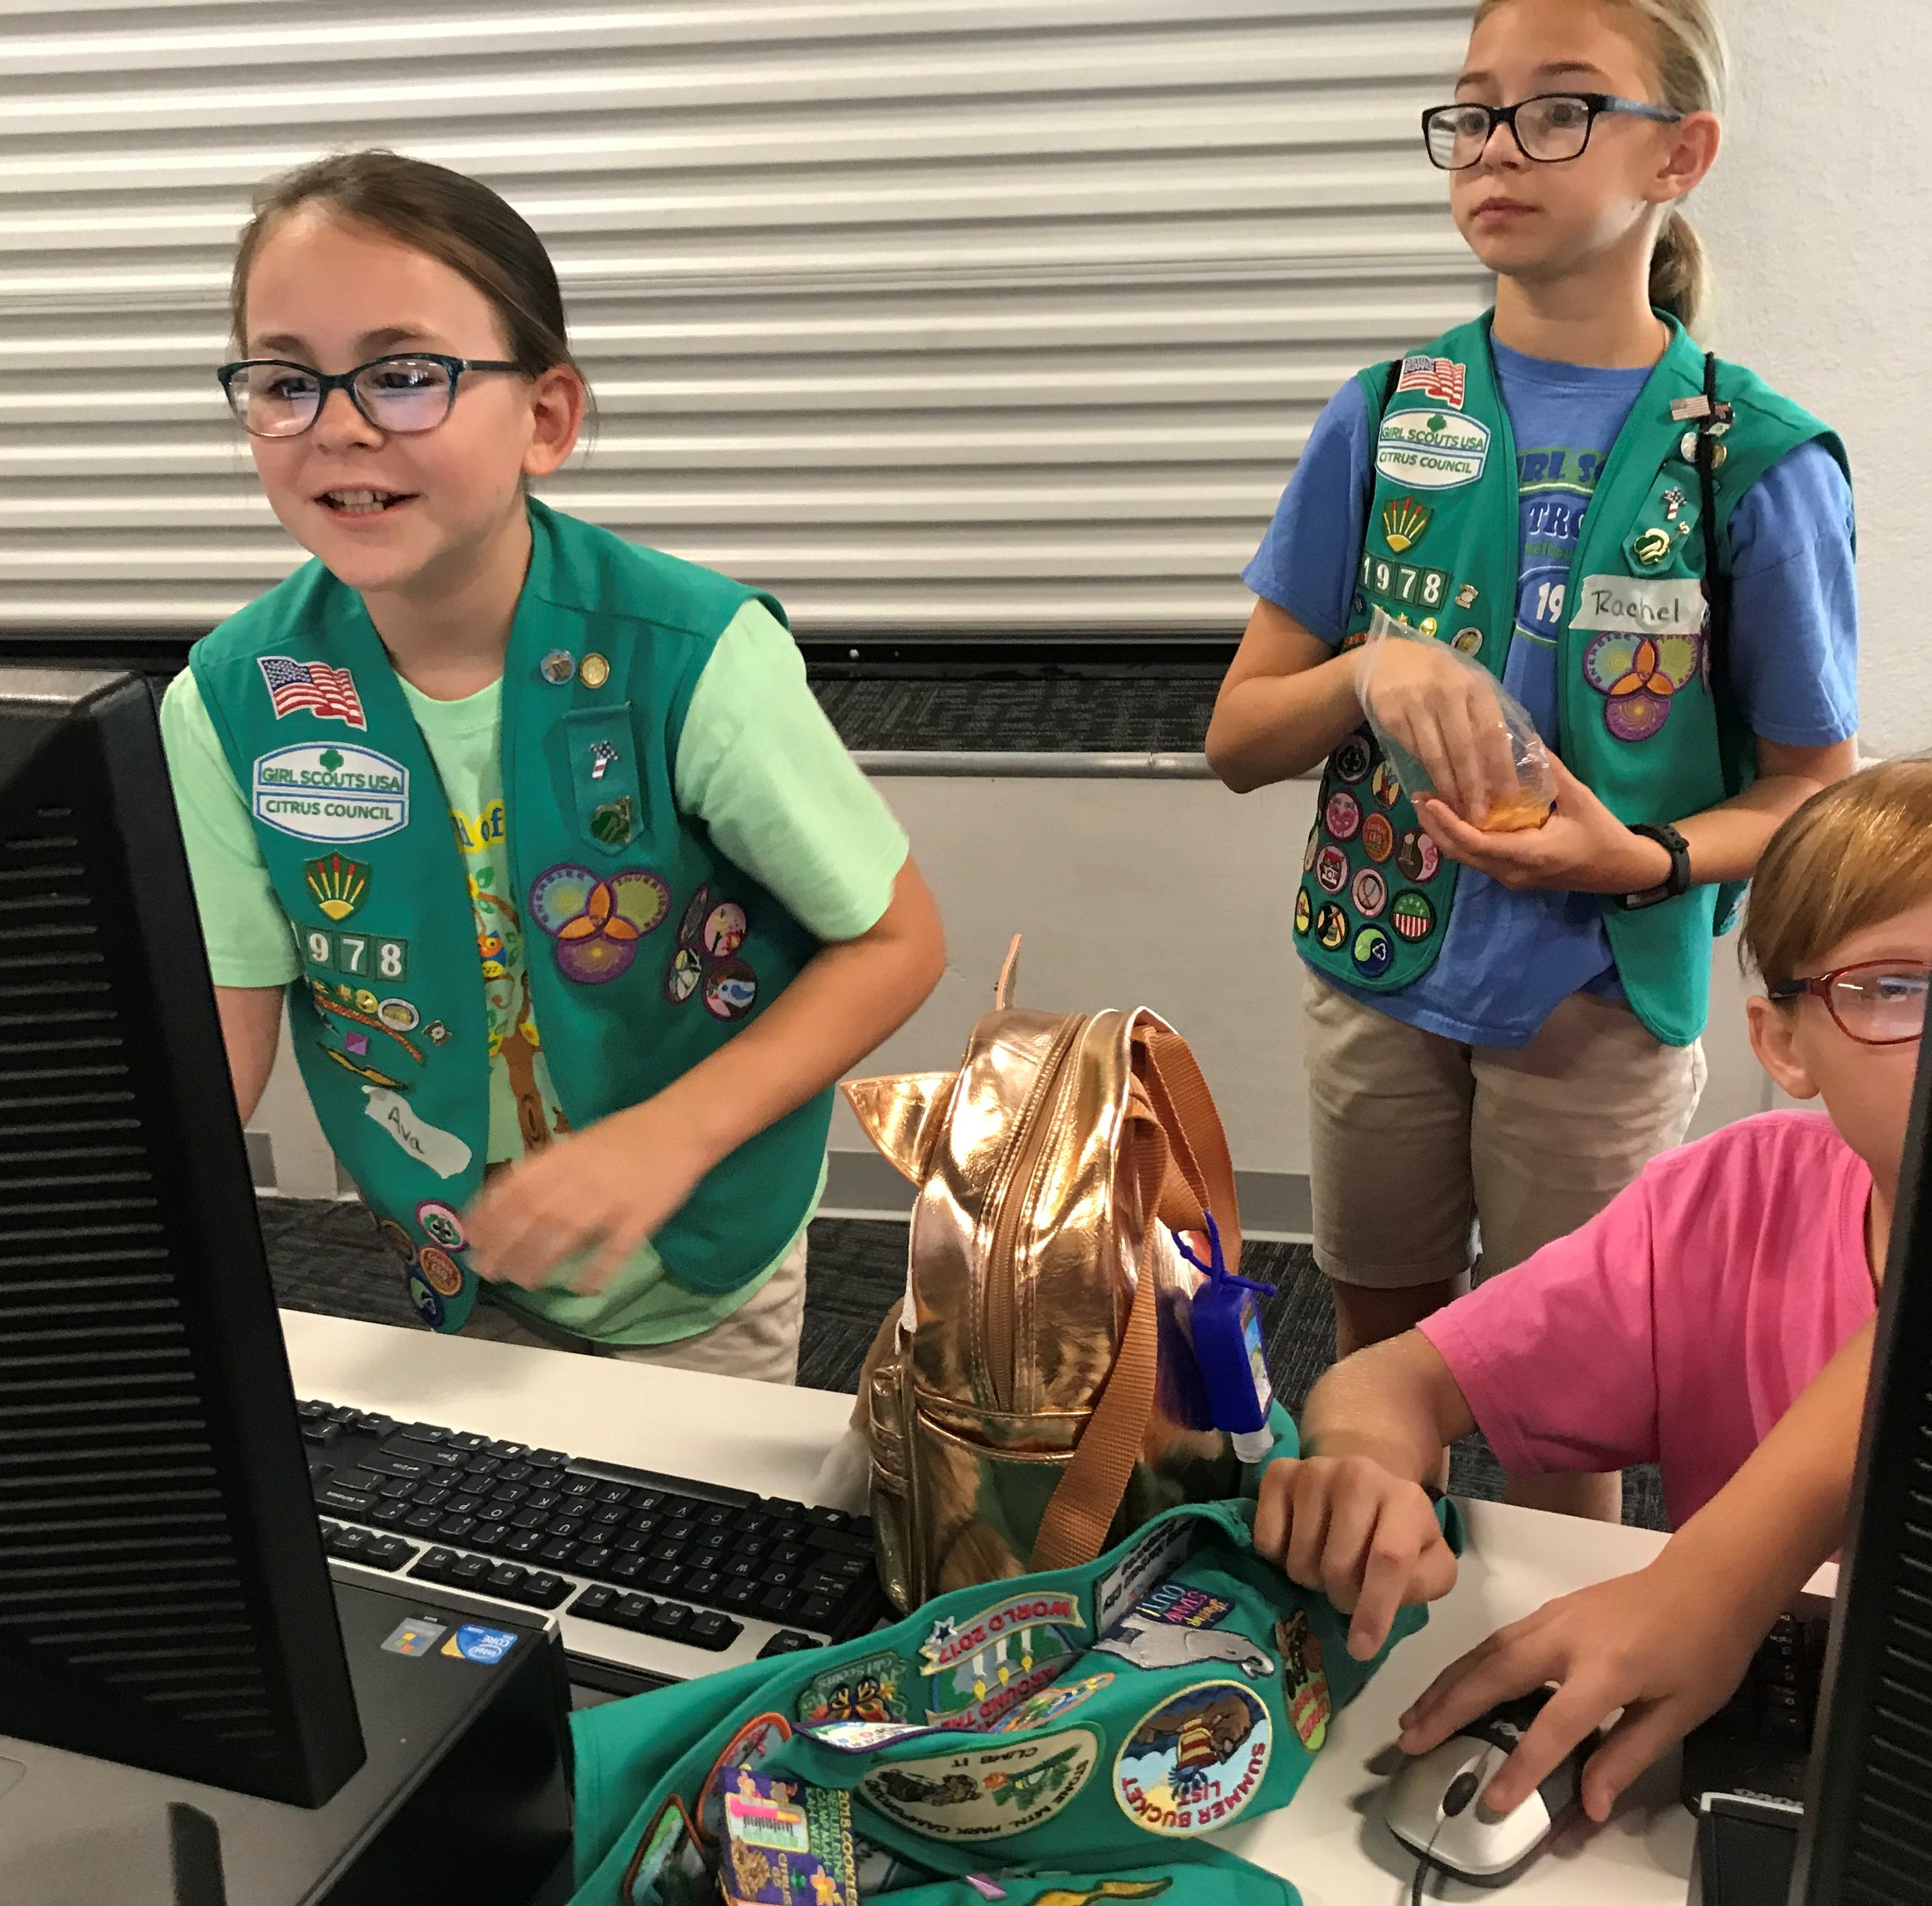 Computer coding and cookies: Girl Scouts are doing both